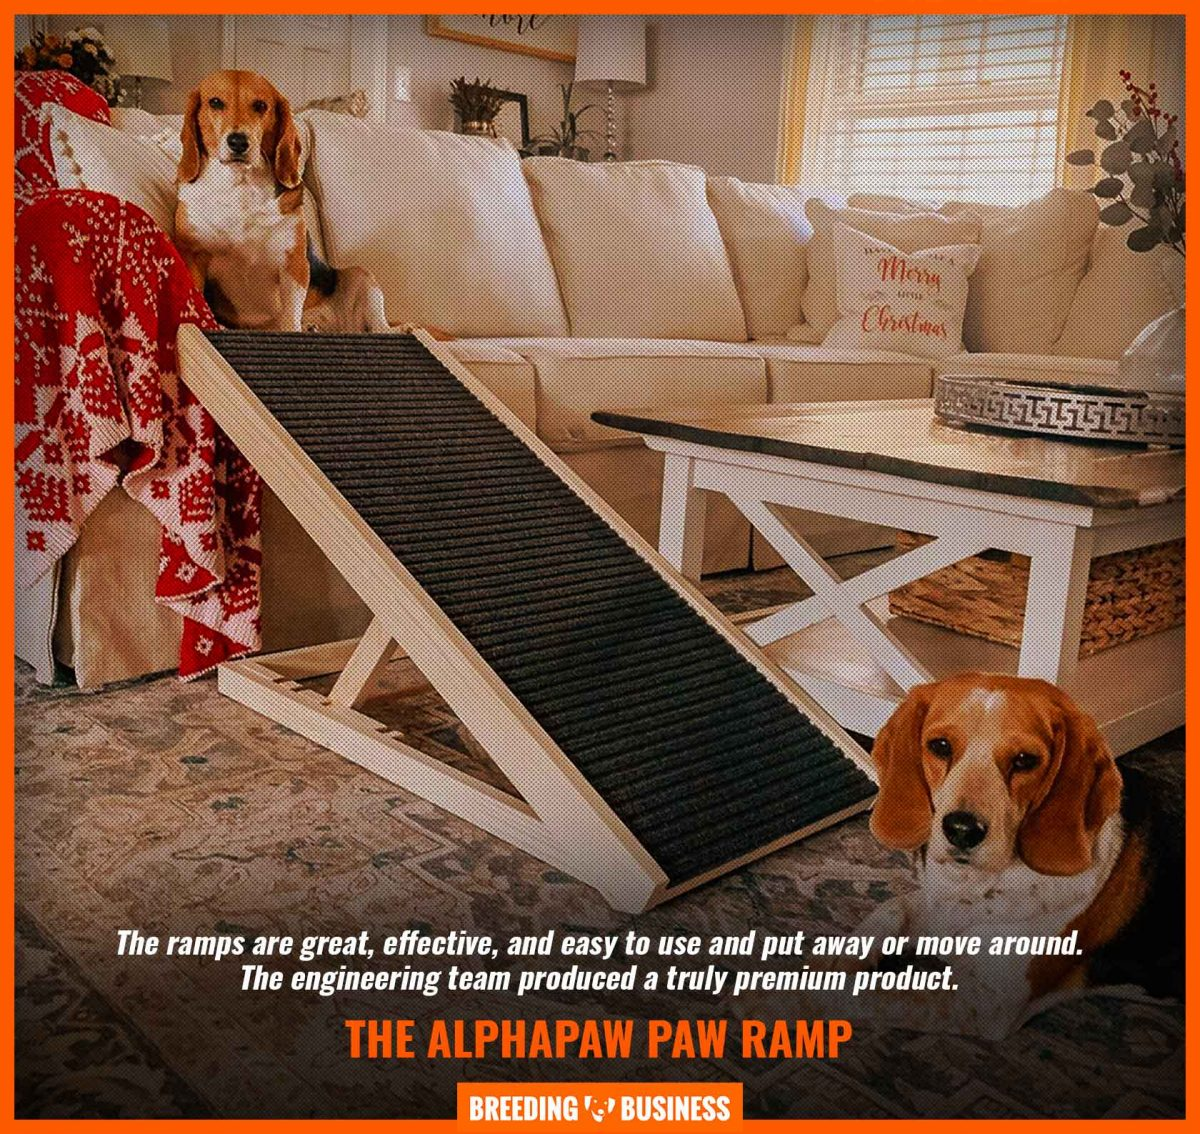 AlphaPaw PawRamp 2 Review